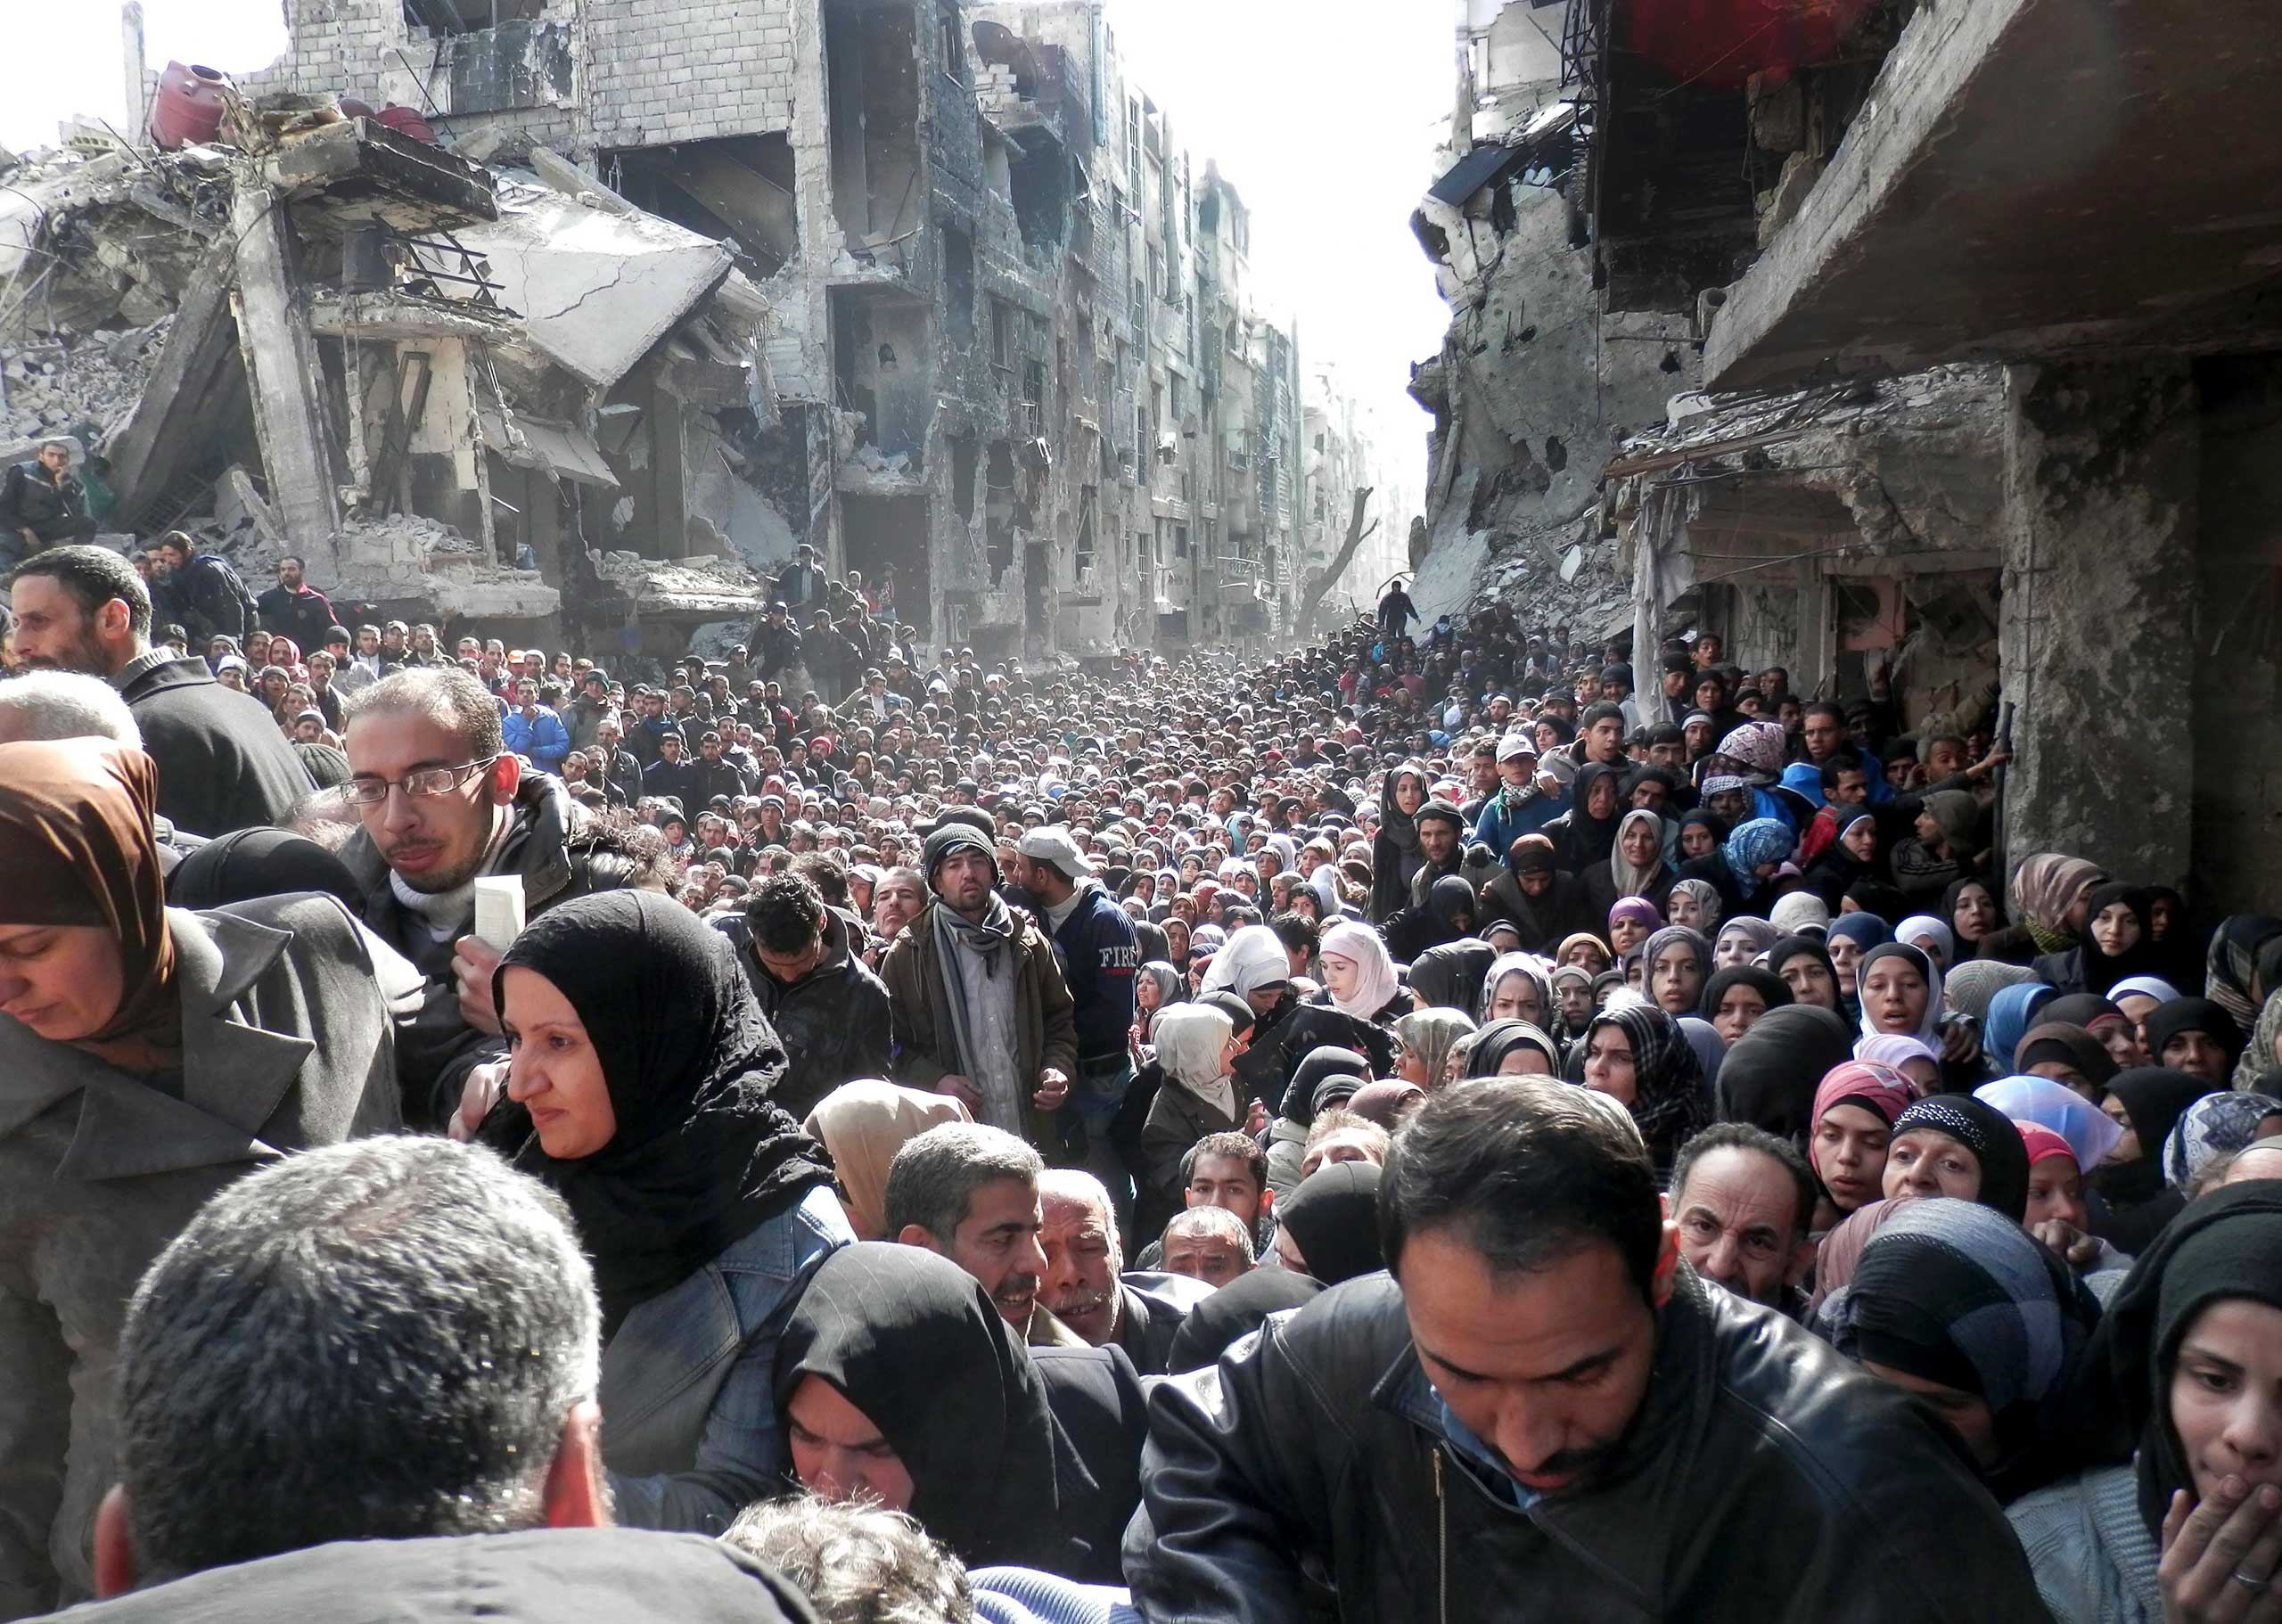 A handout photo of Palestinian refugees waiting for food aid in the Yarmouk camp on the outskirts of Damascus, Syria, Jan. 31, 2014.